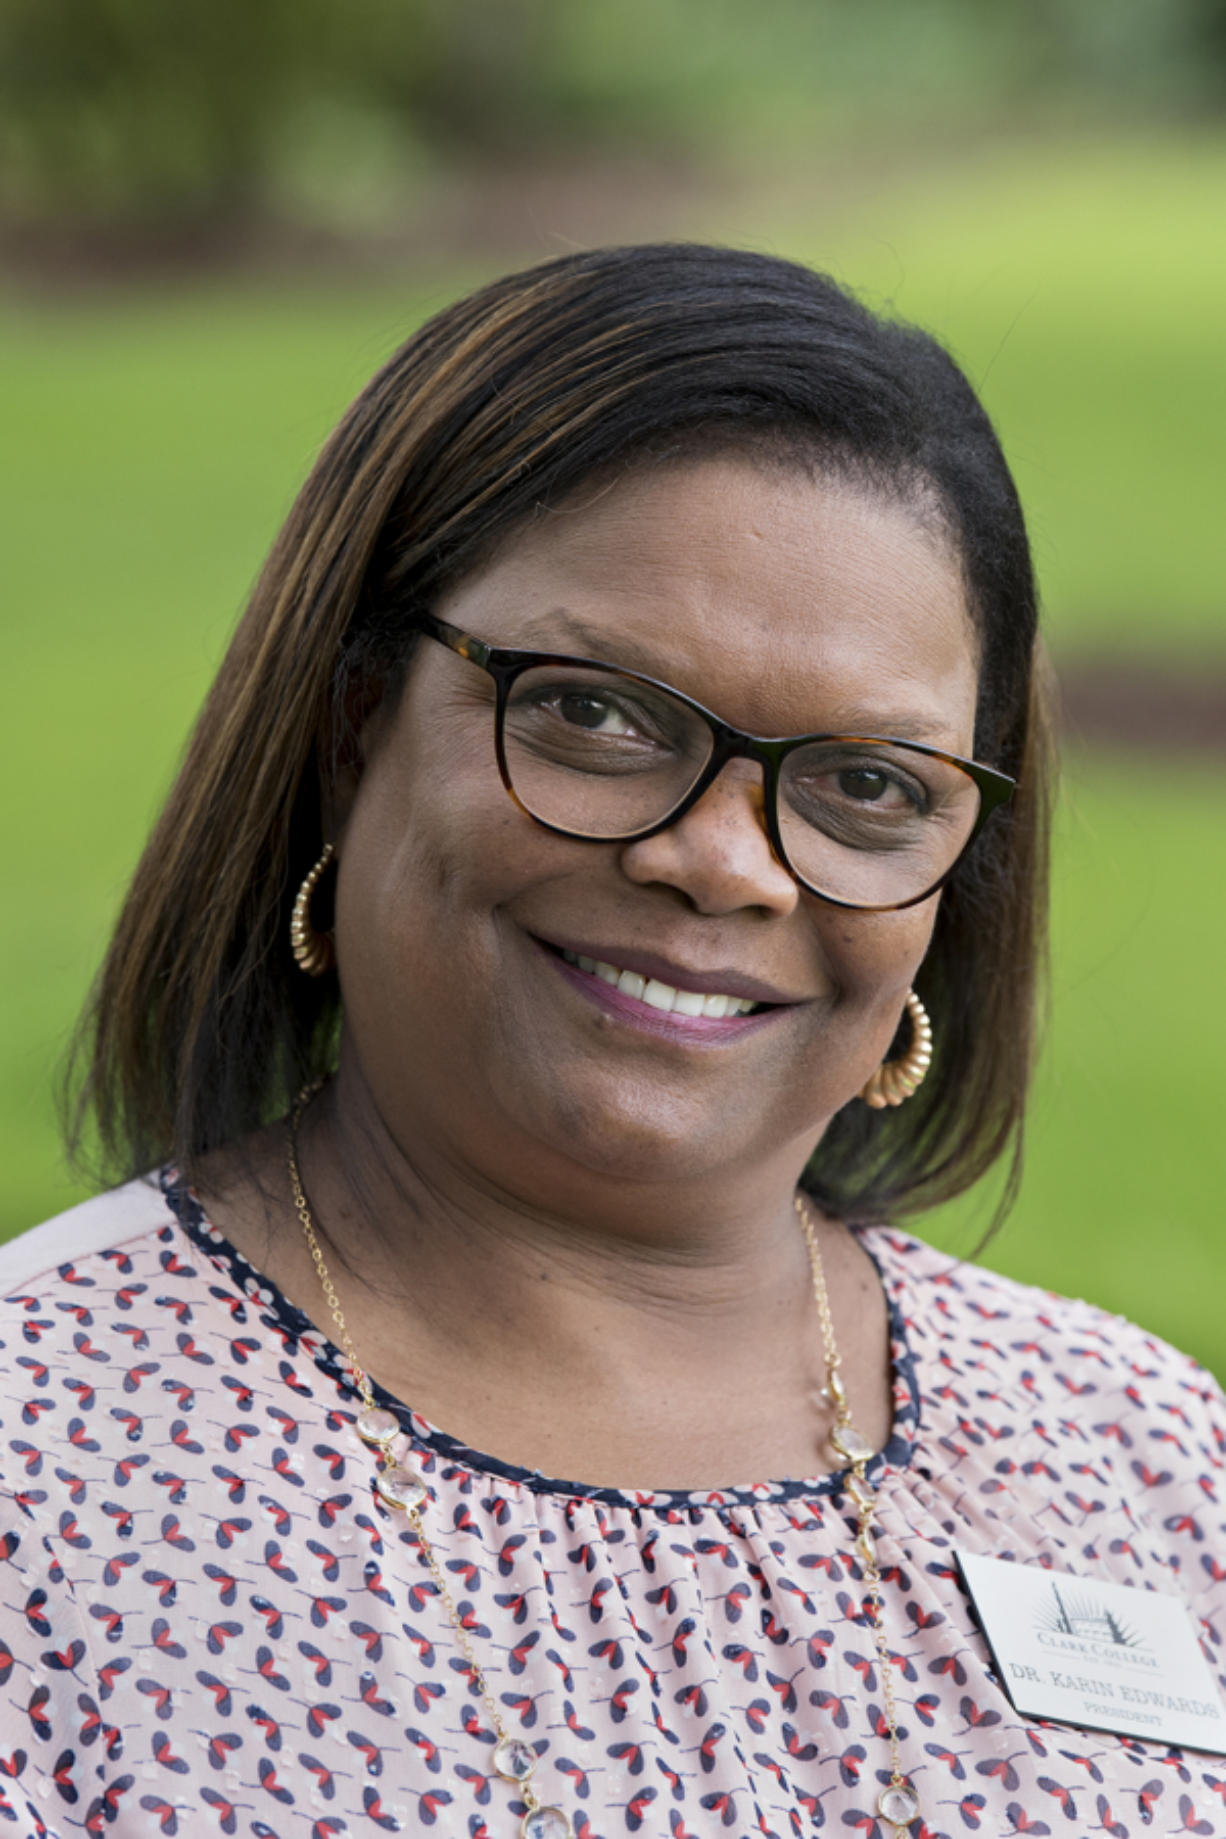 Karin Edwards,  president of Clark College who has a background supporting students of color, is pictured on campus Tuesday afternoon, July 7, 2020.